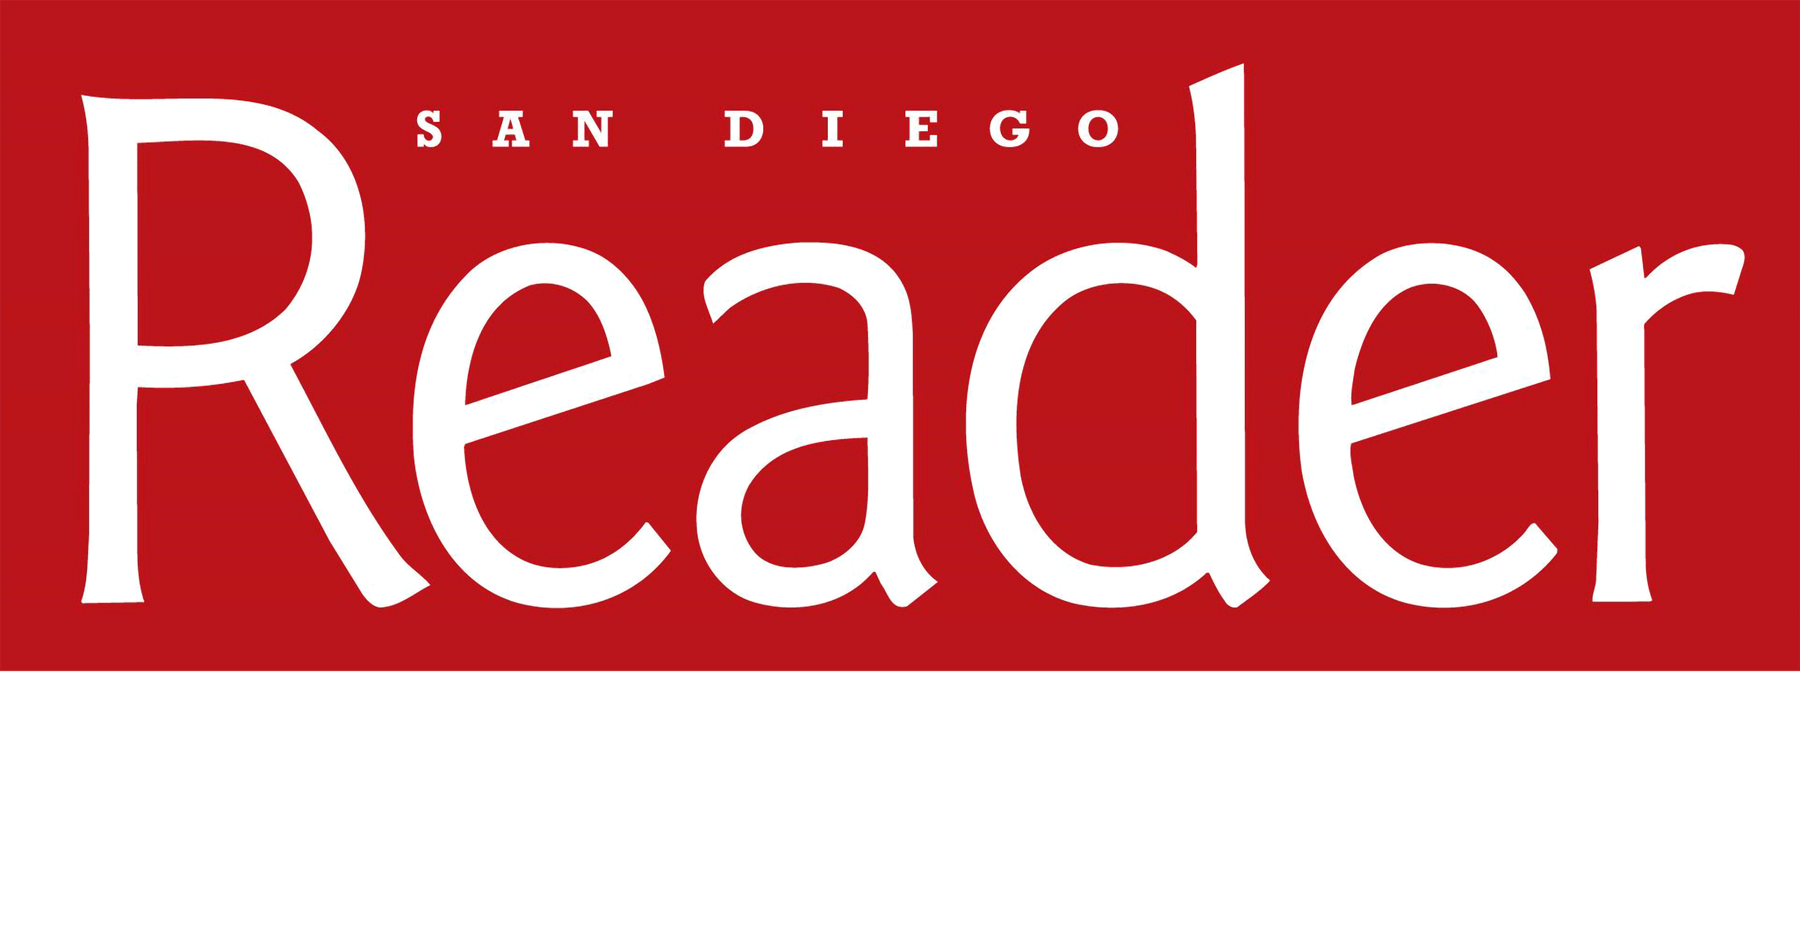 ARTICLES - Article in the San Diego Reader. Click to read.